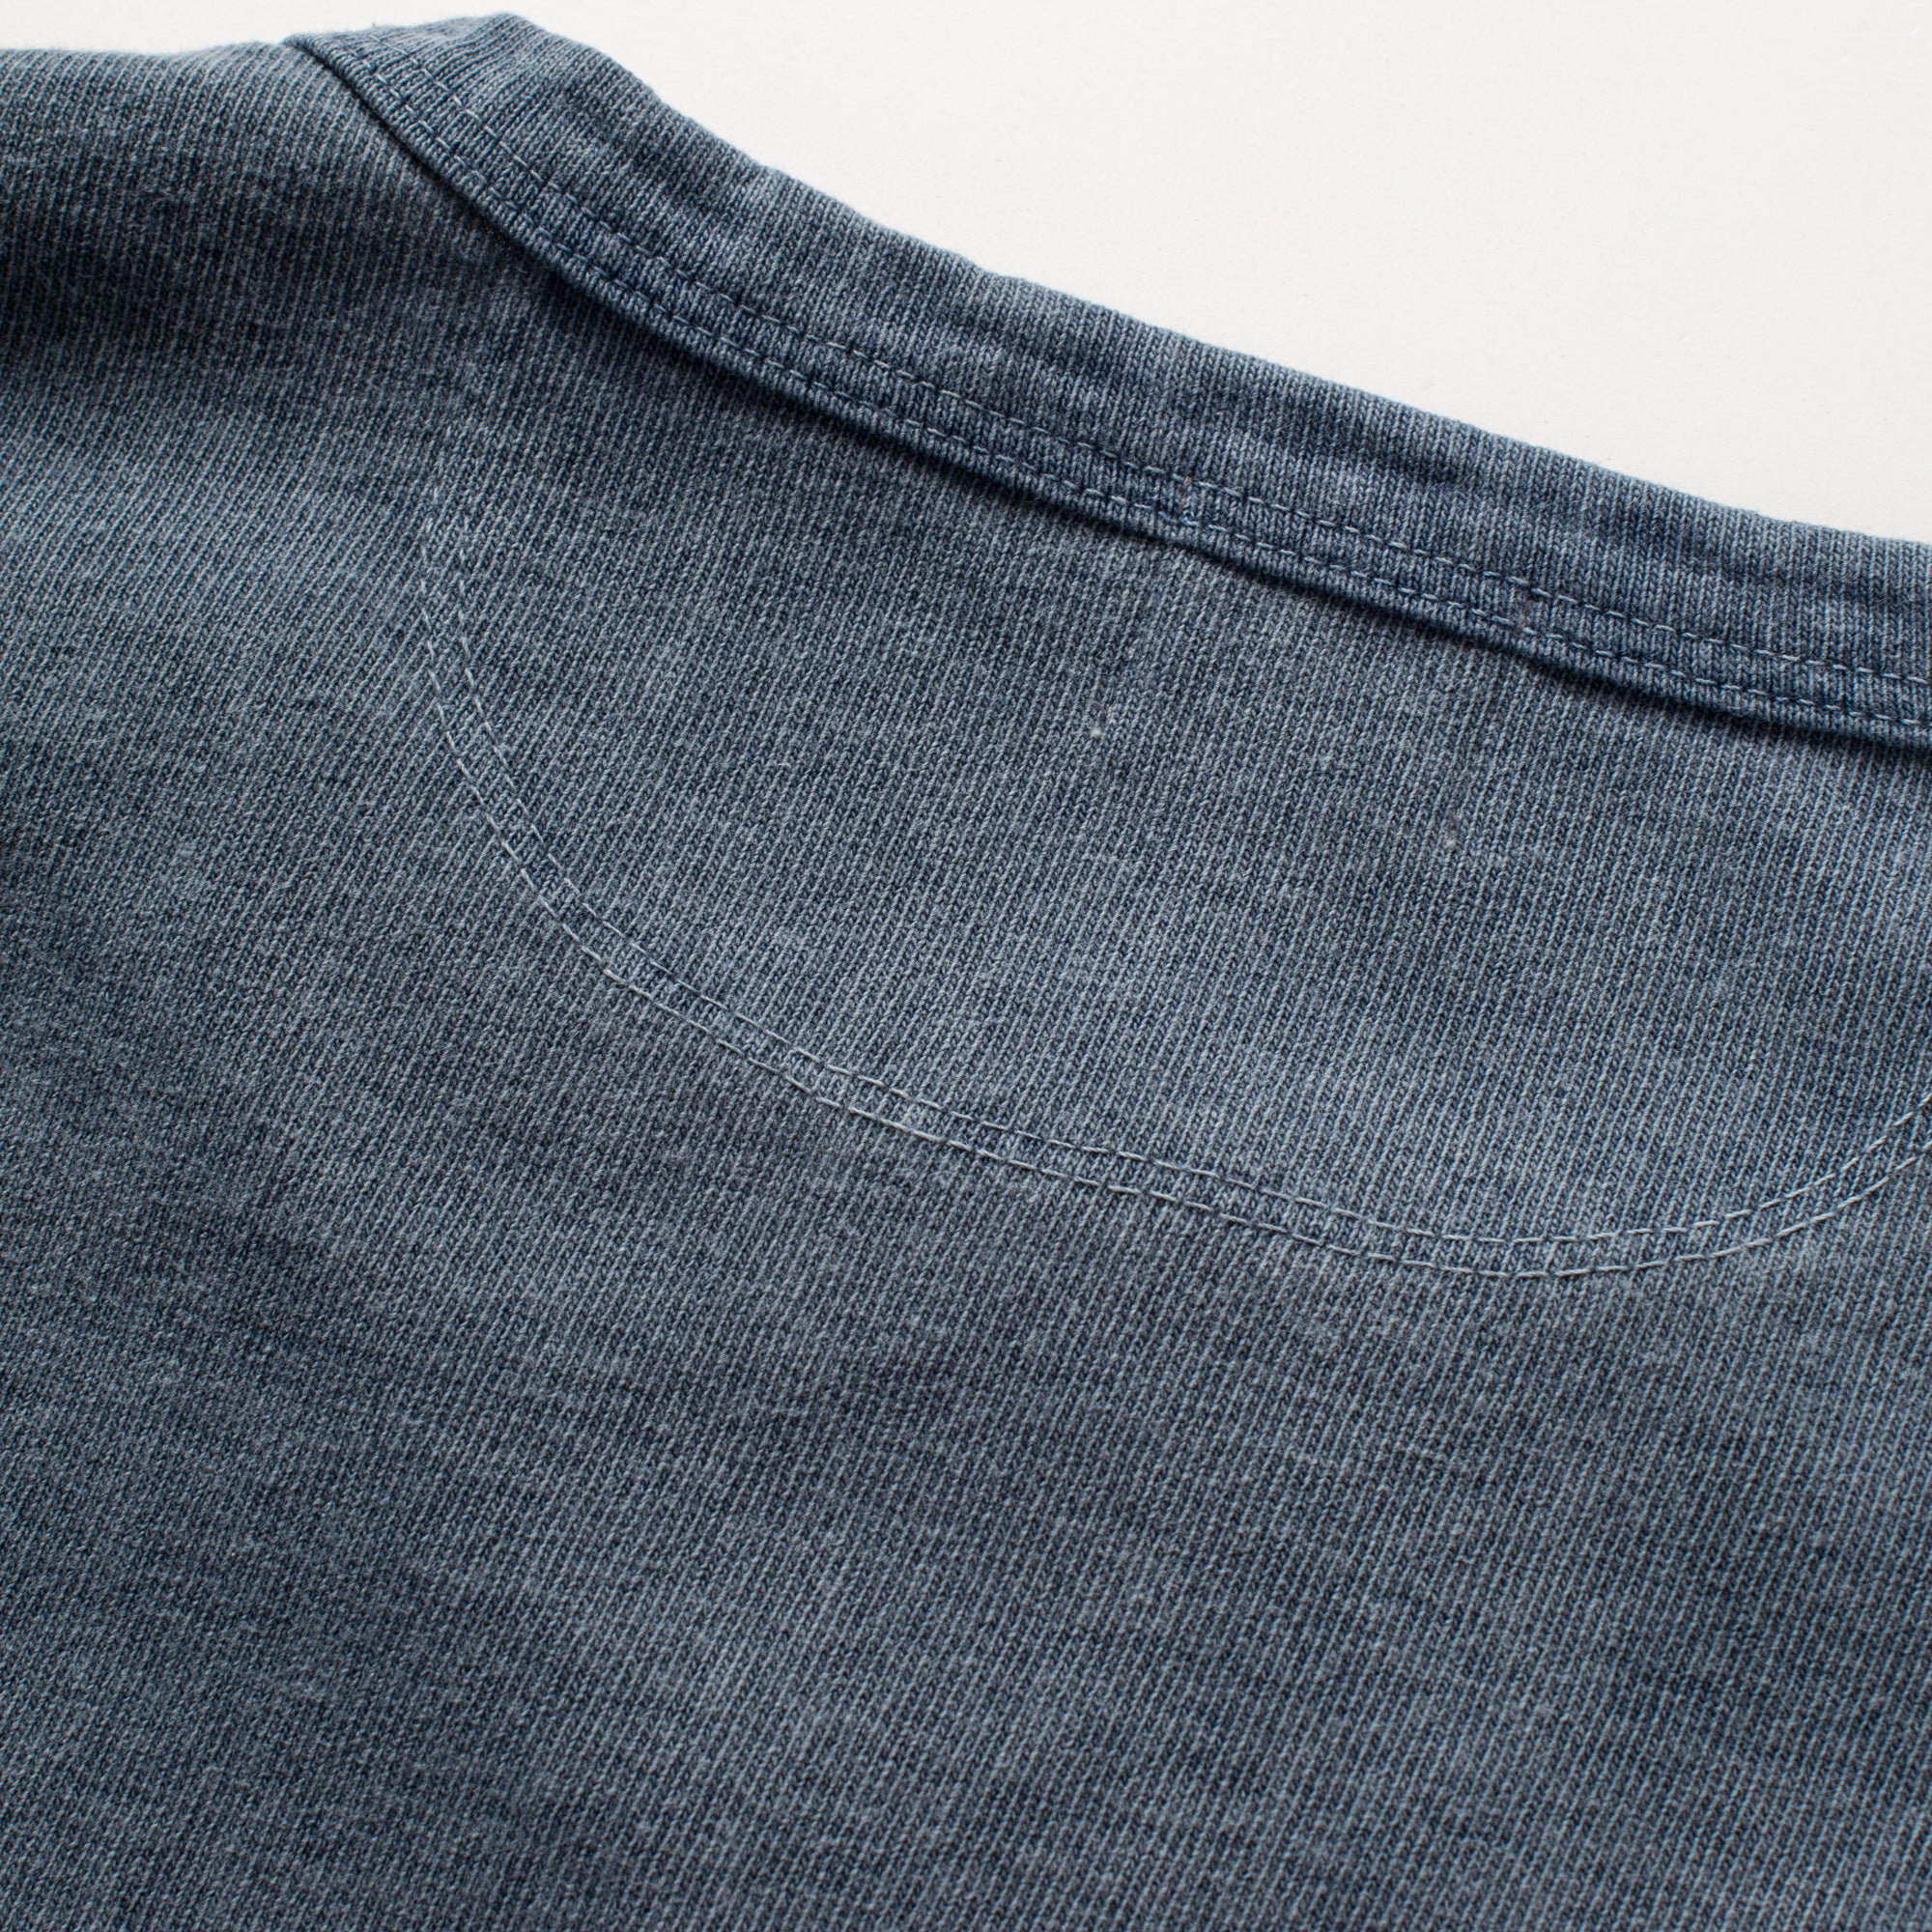 13 ounce Henley LS Faded Blue Upper Back